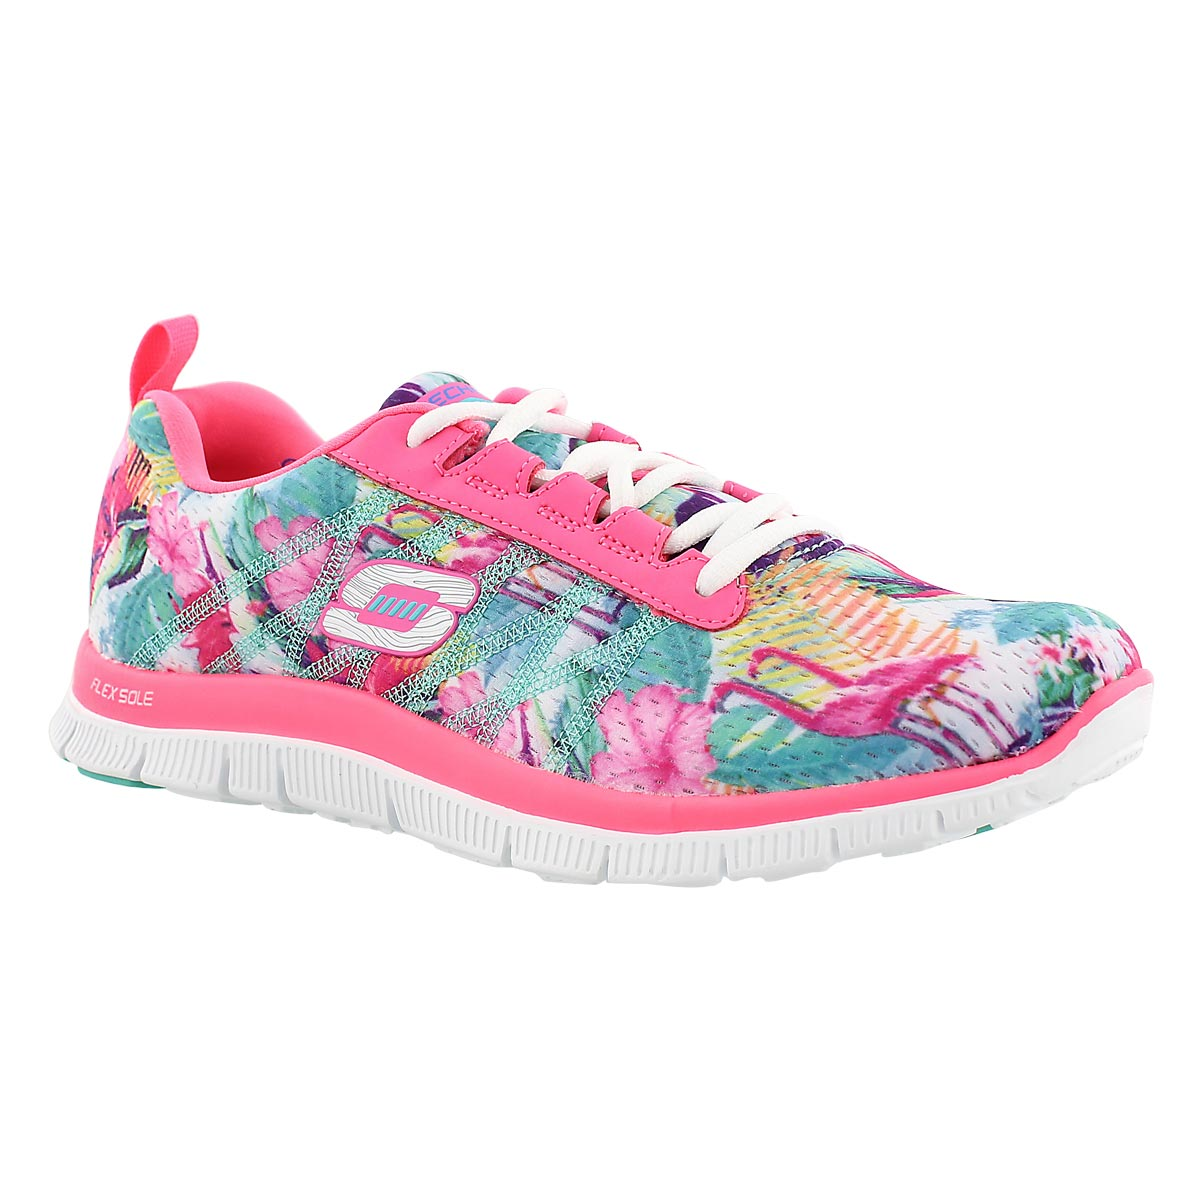 Lds Floral Bloom multi lace up runner